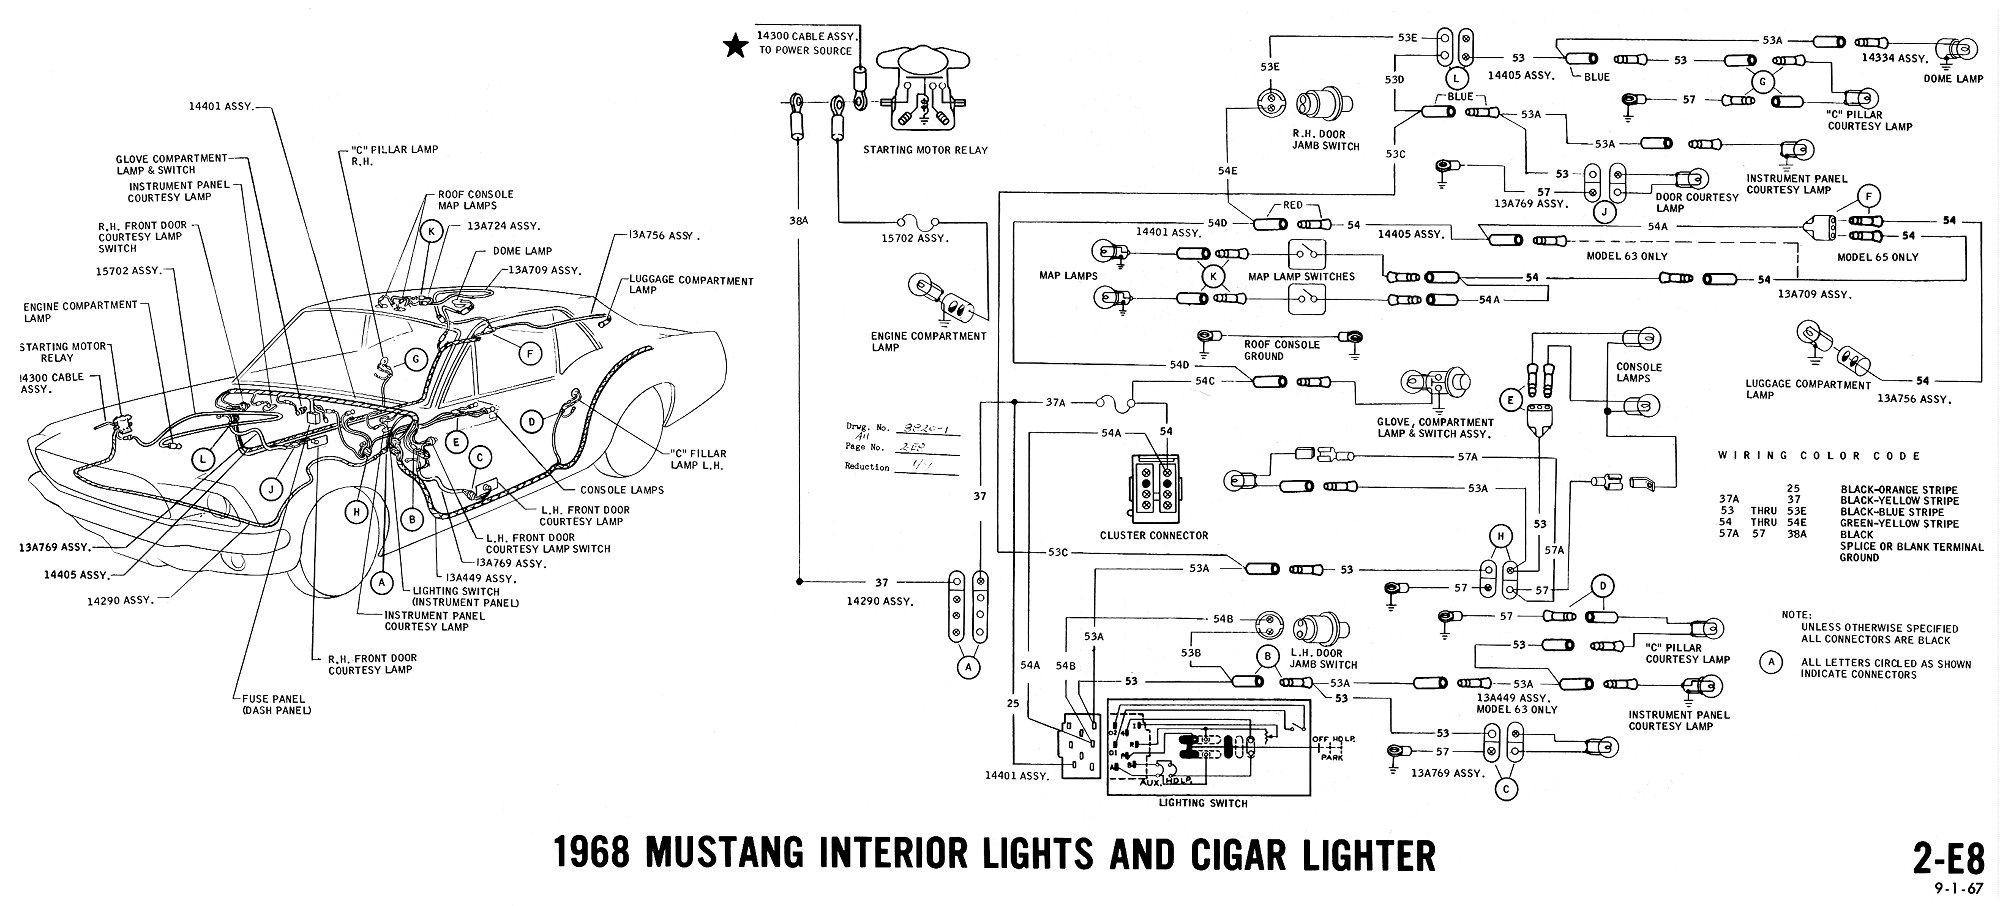 Mustang Wiring Diagrams Diagram Schemes 1989 F150 Alternator Harness 1968 Evolving Software 5 Wire Cigar Lighter Interior Lights